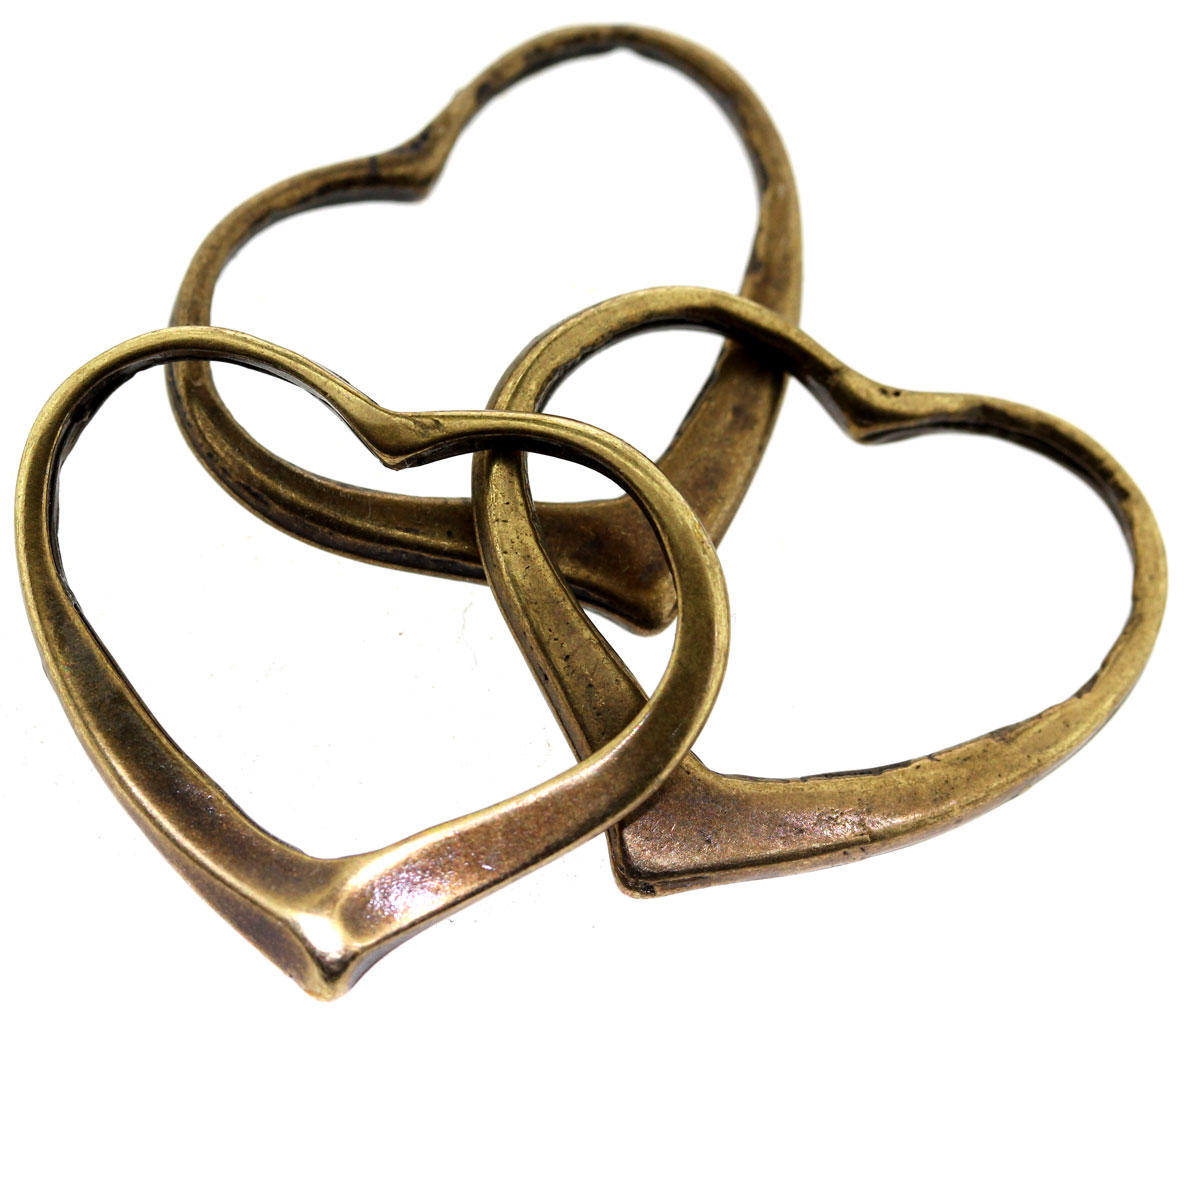 Antique Gold Sideways Heart Charm